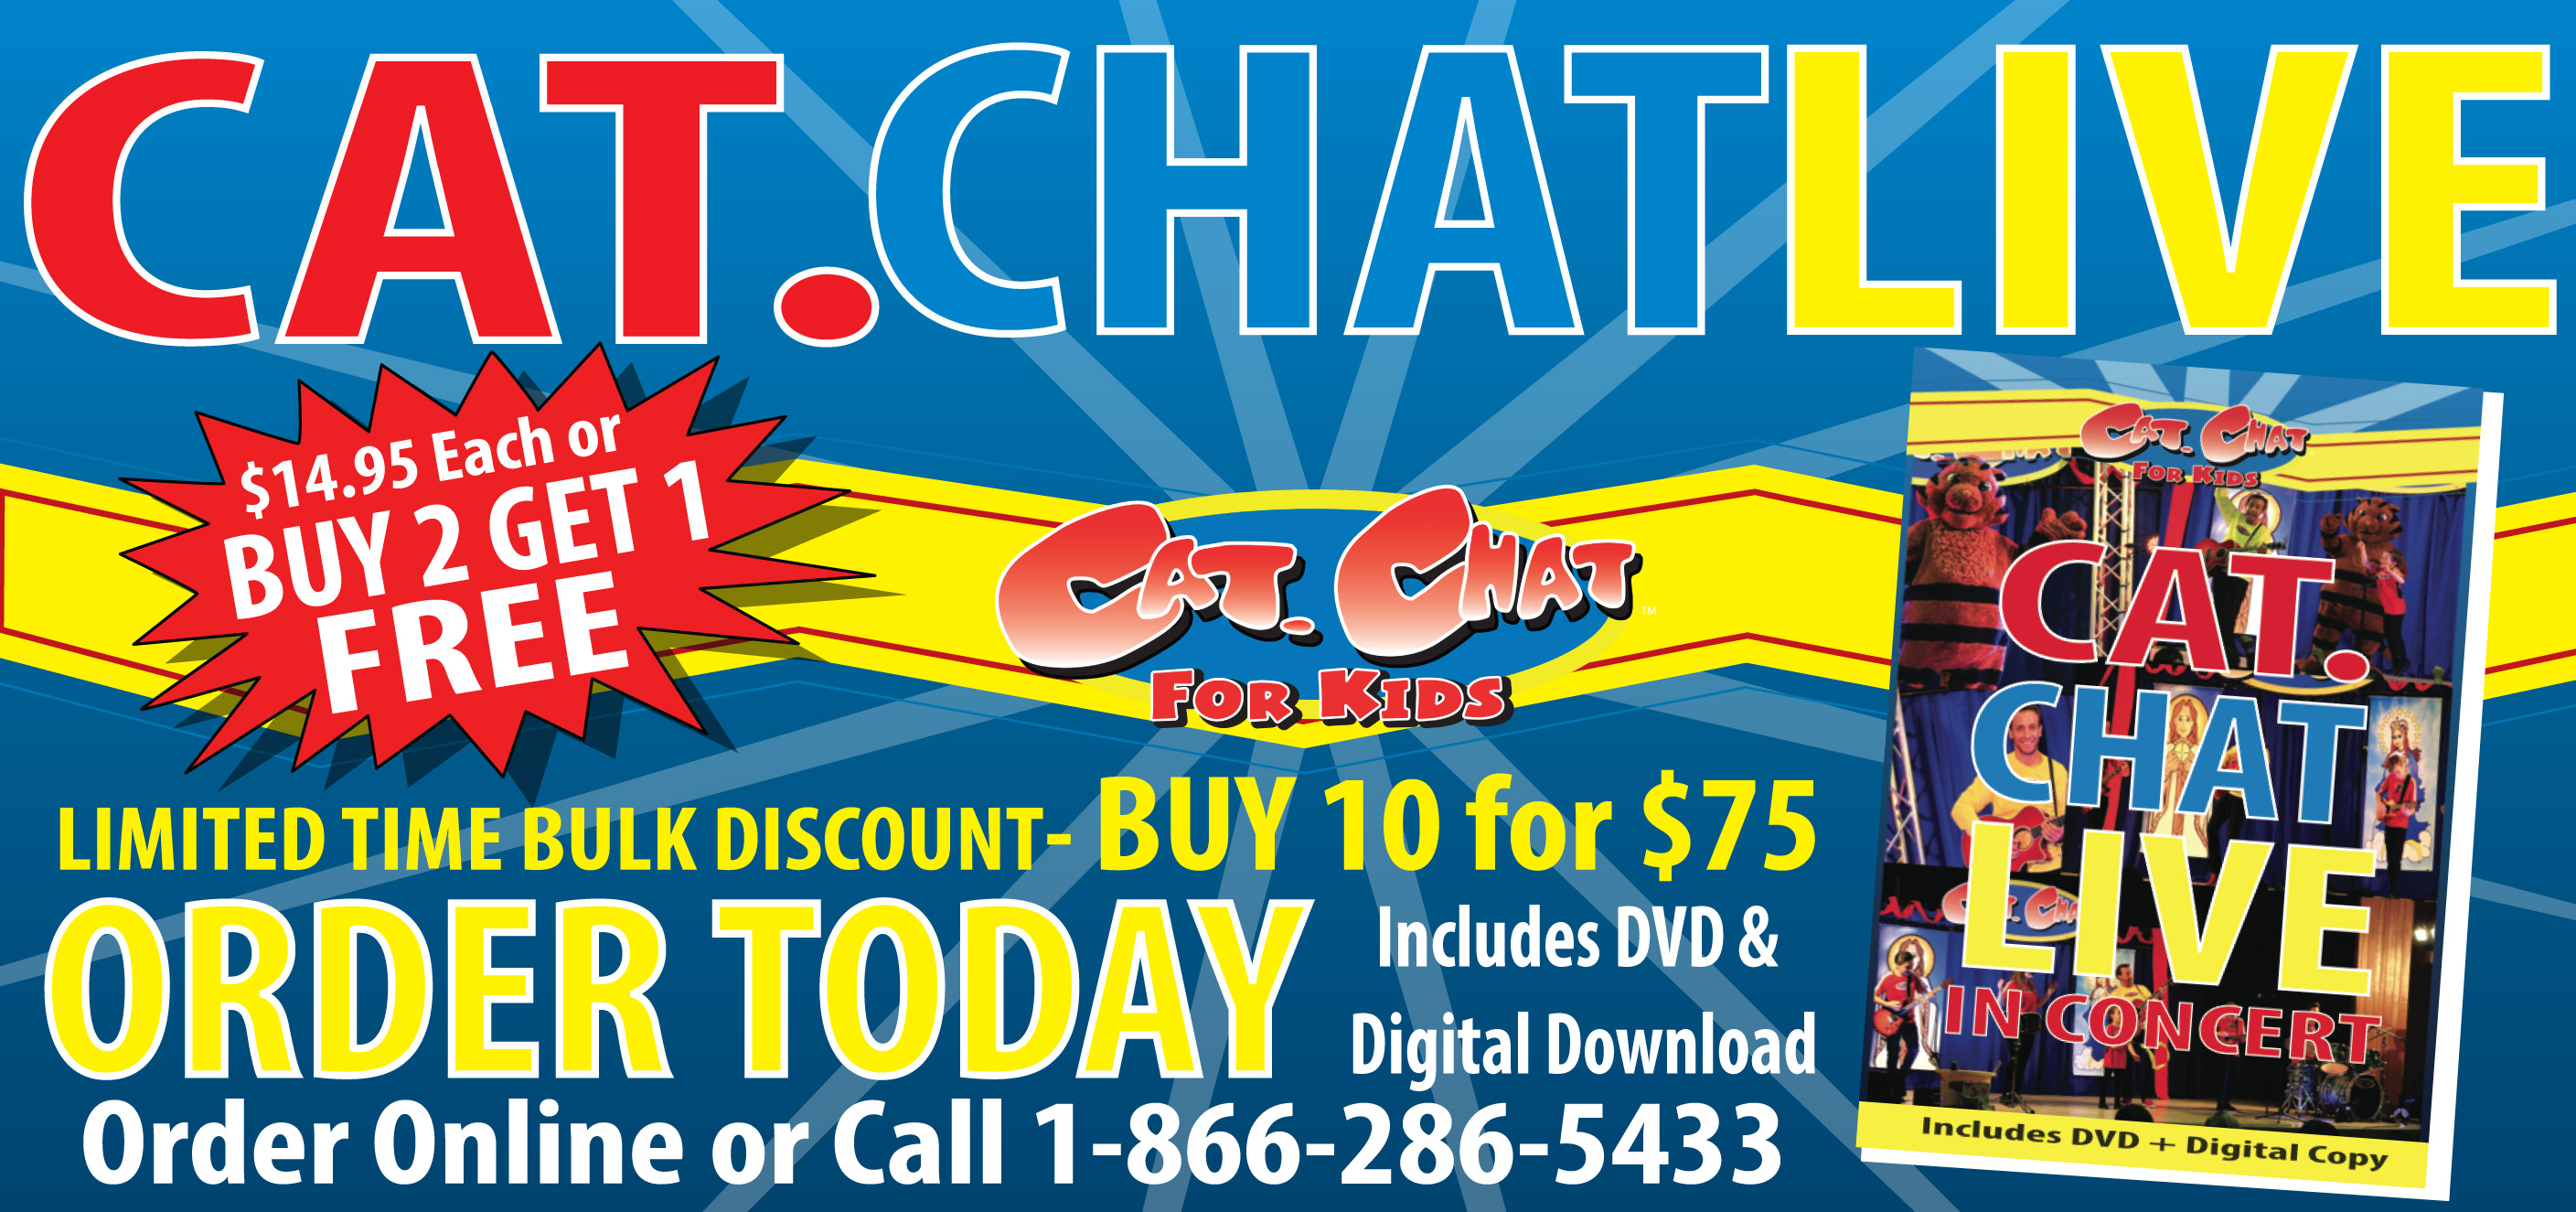 CAT.CHAT LIVE DVD